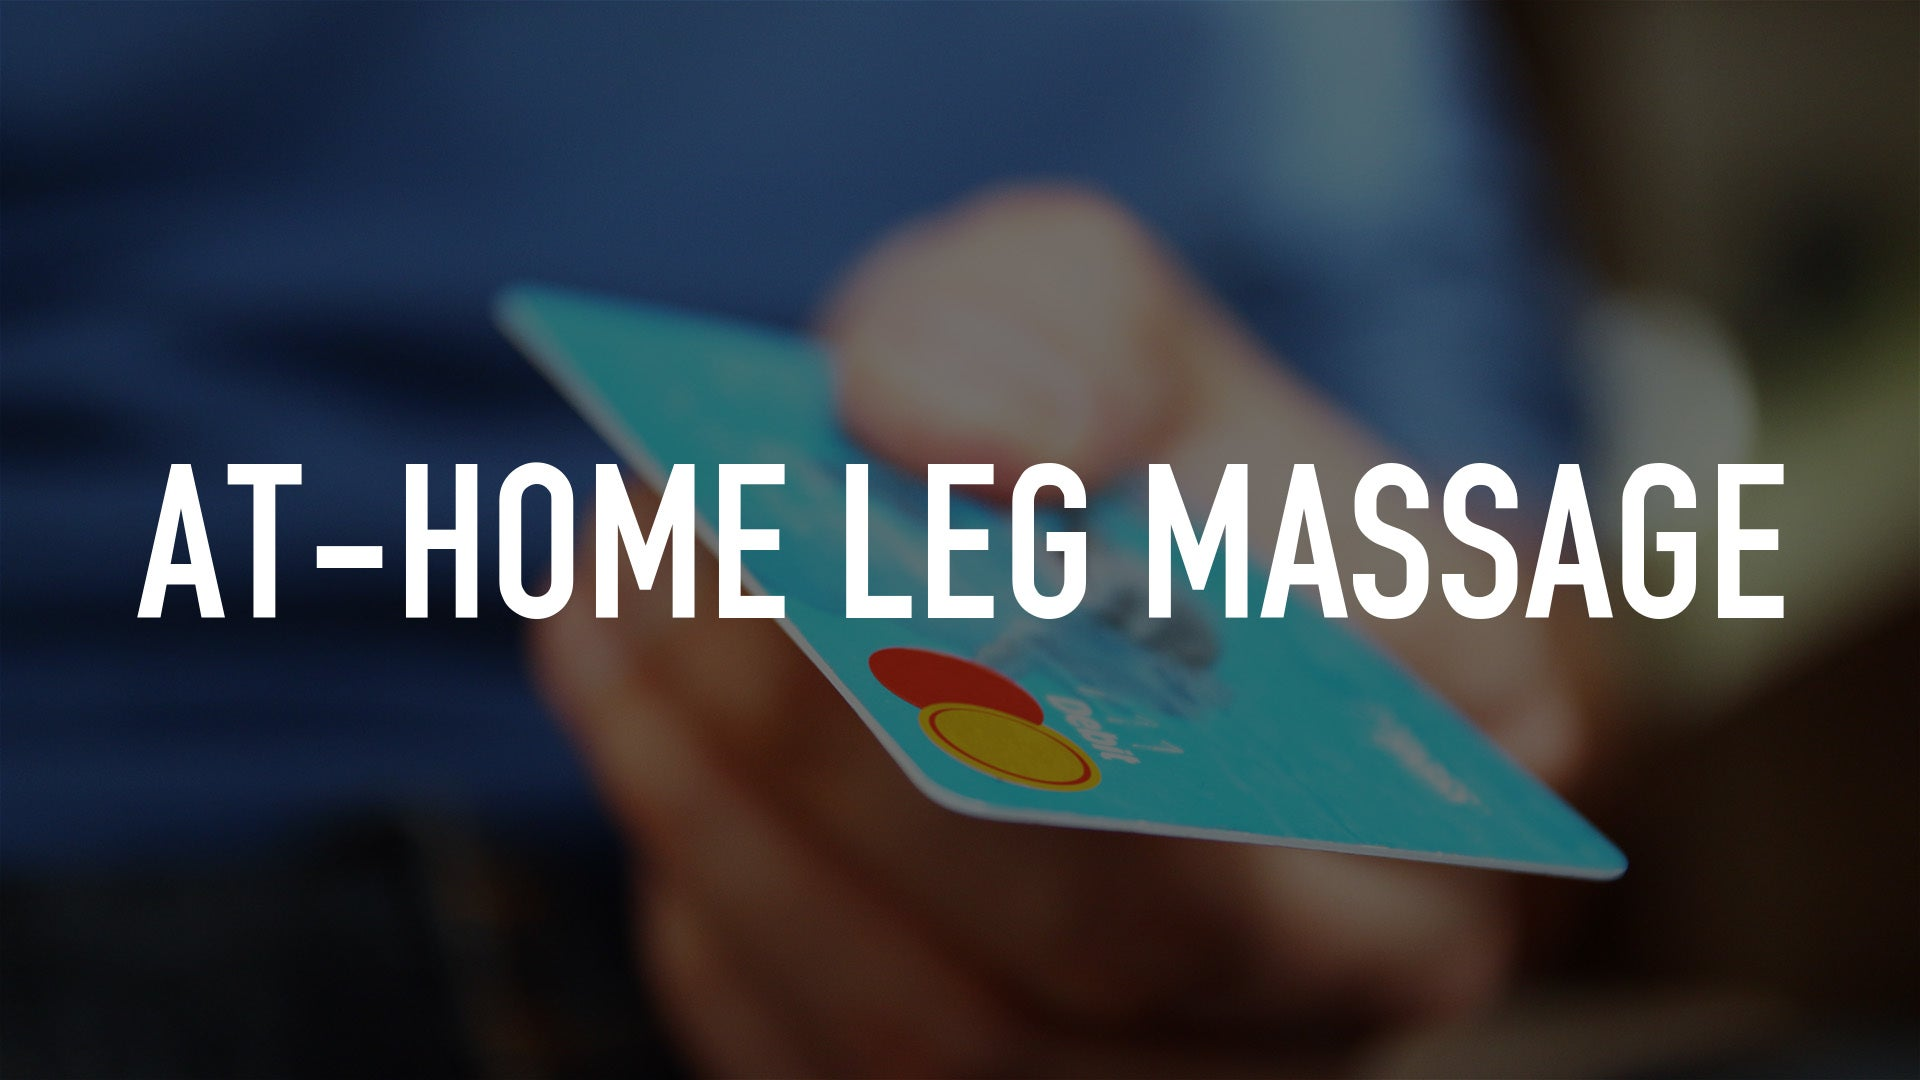 At-Home Leg Massage